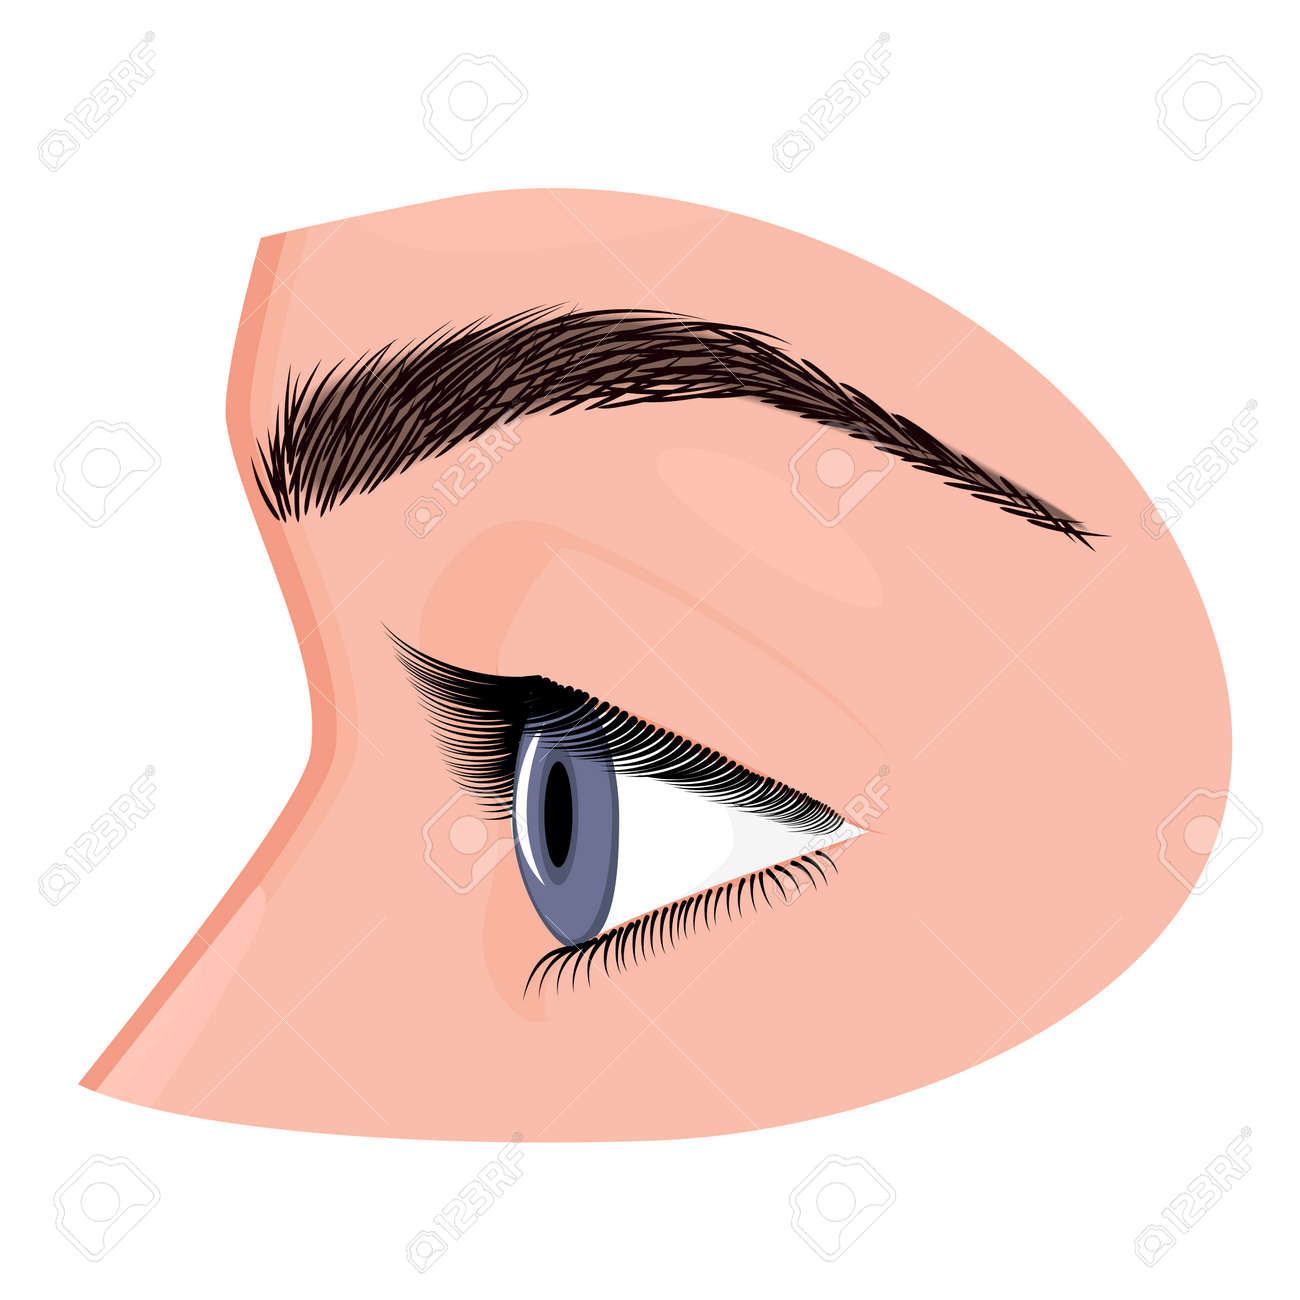 Vector Illustration Anatomy Of A Human Eye Side View Close Up